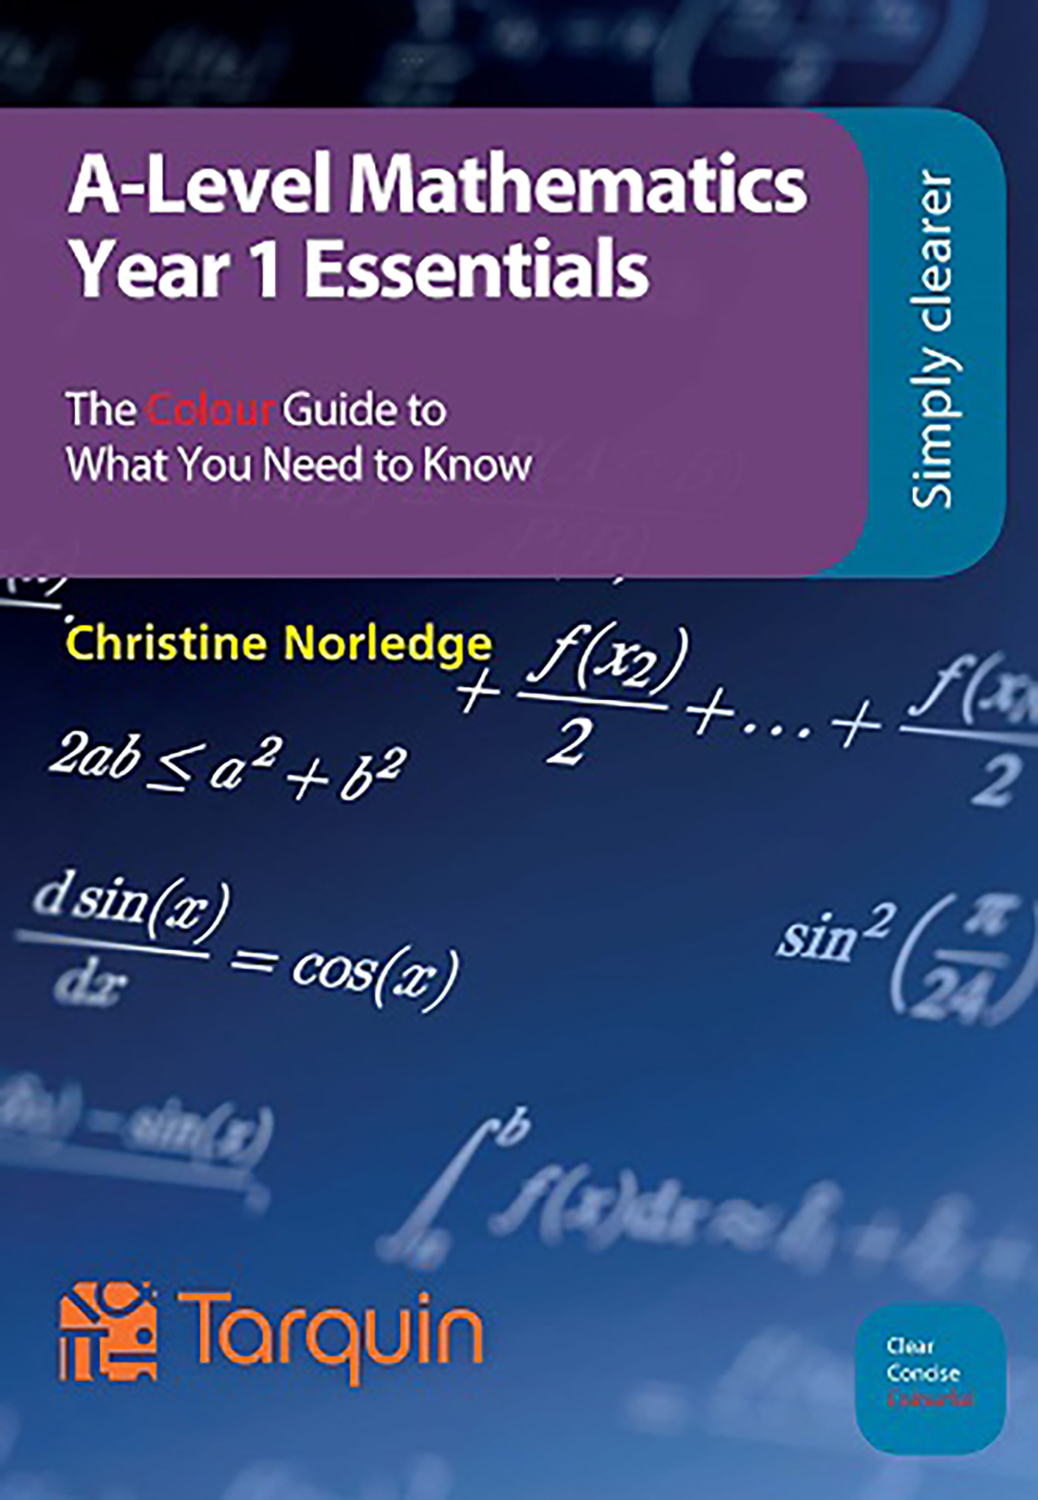 A-Level Mathematics - Year 1 Essentials